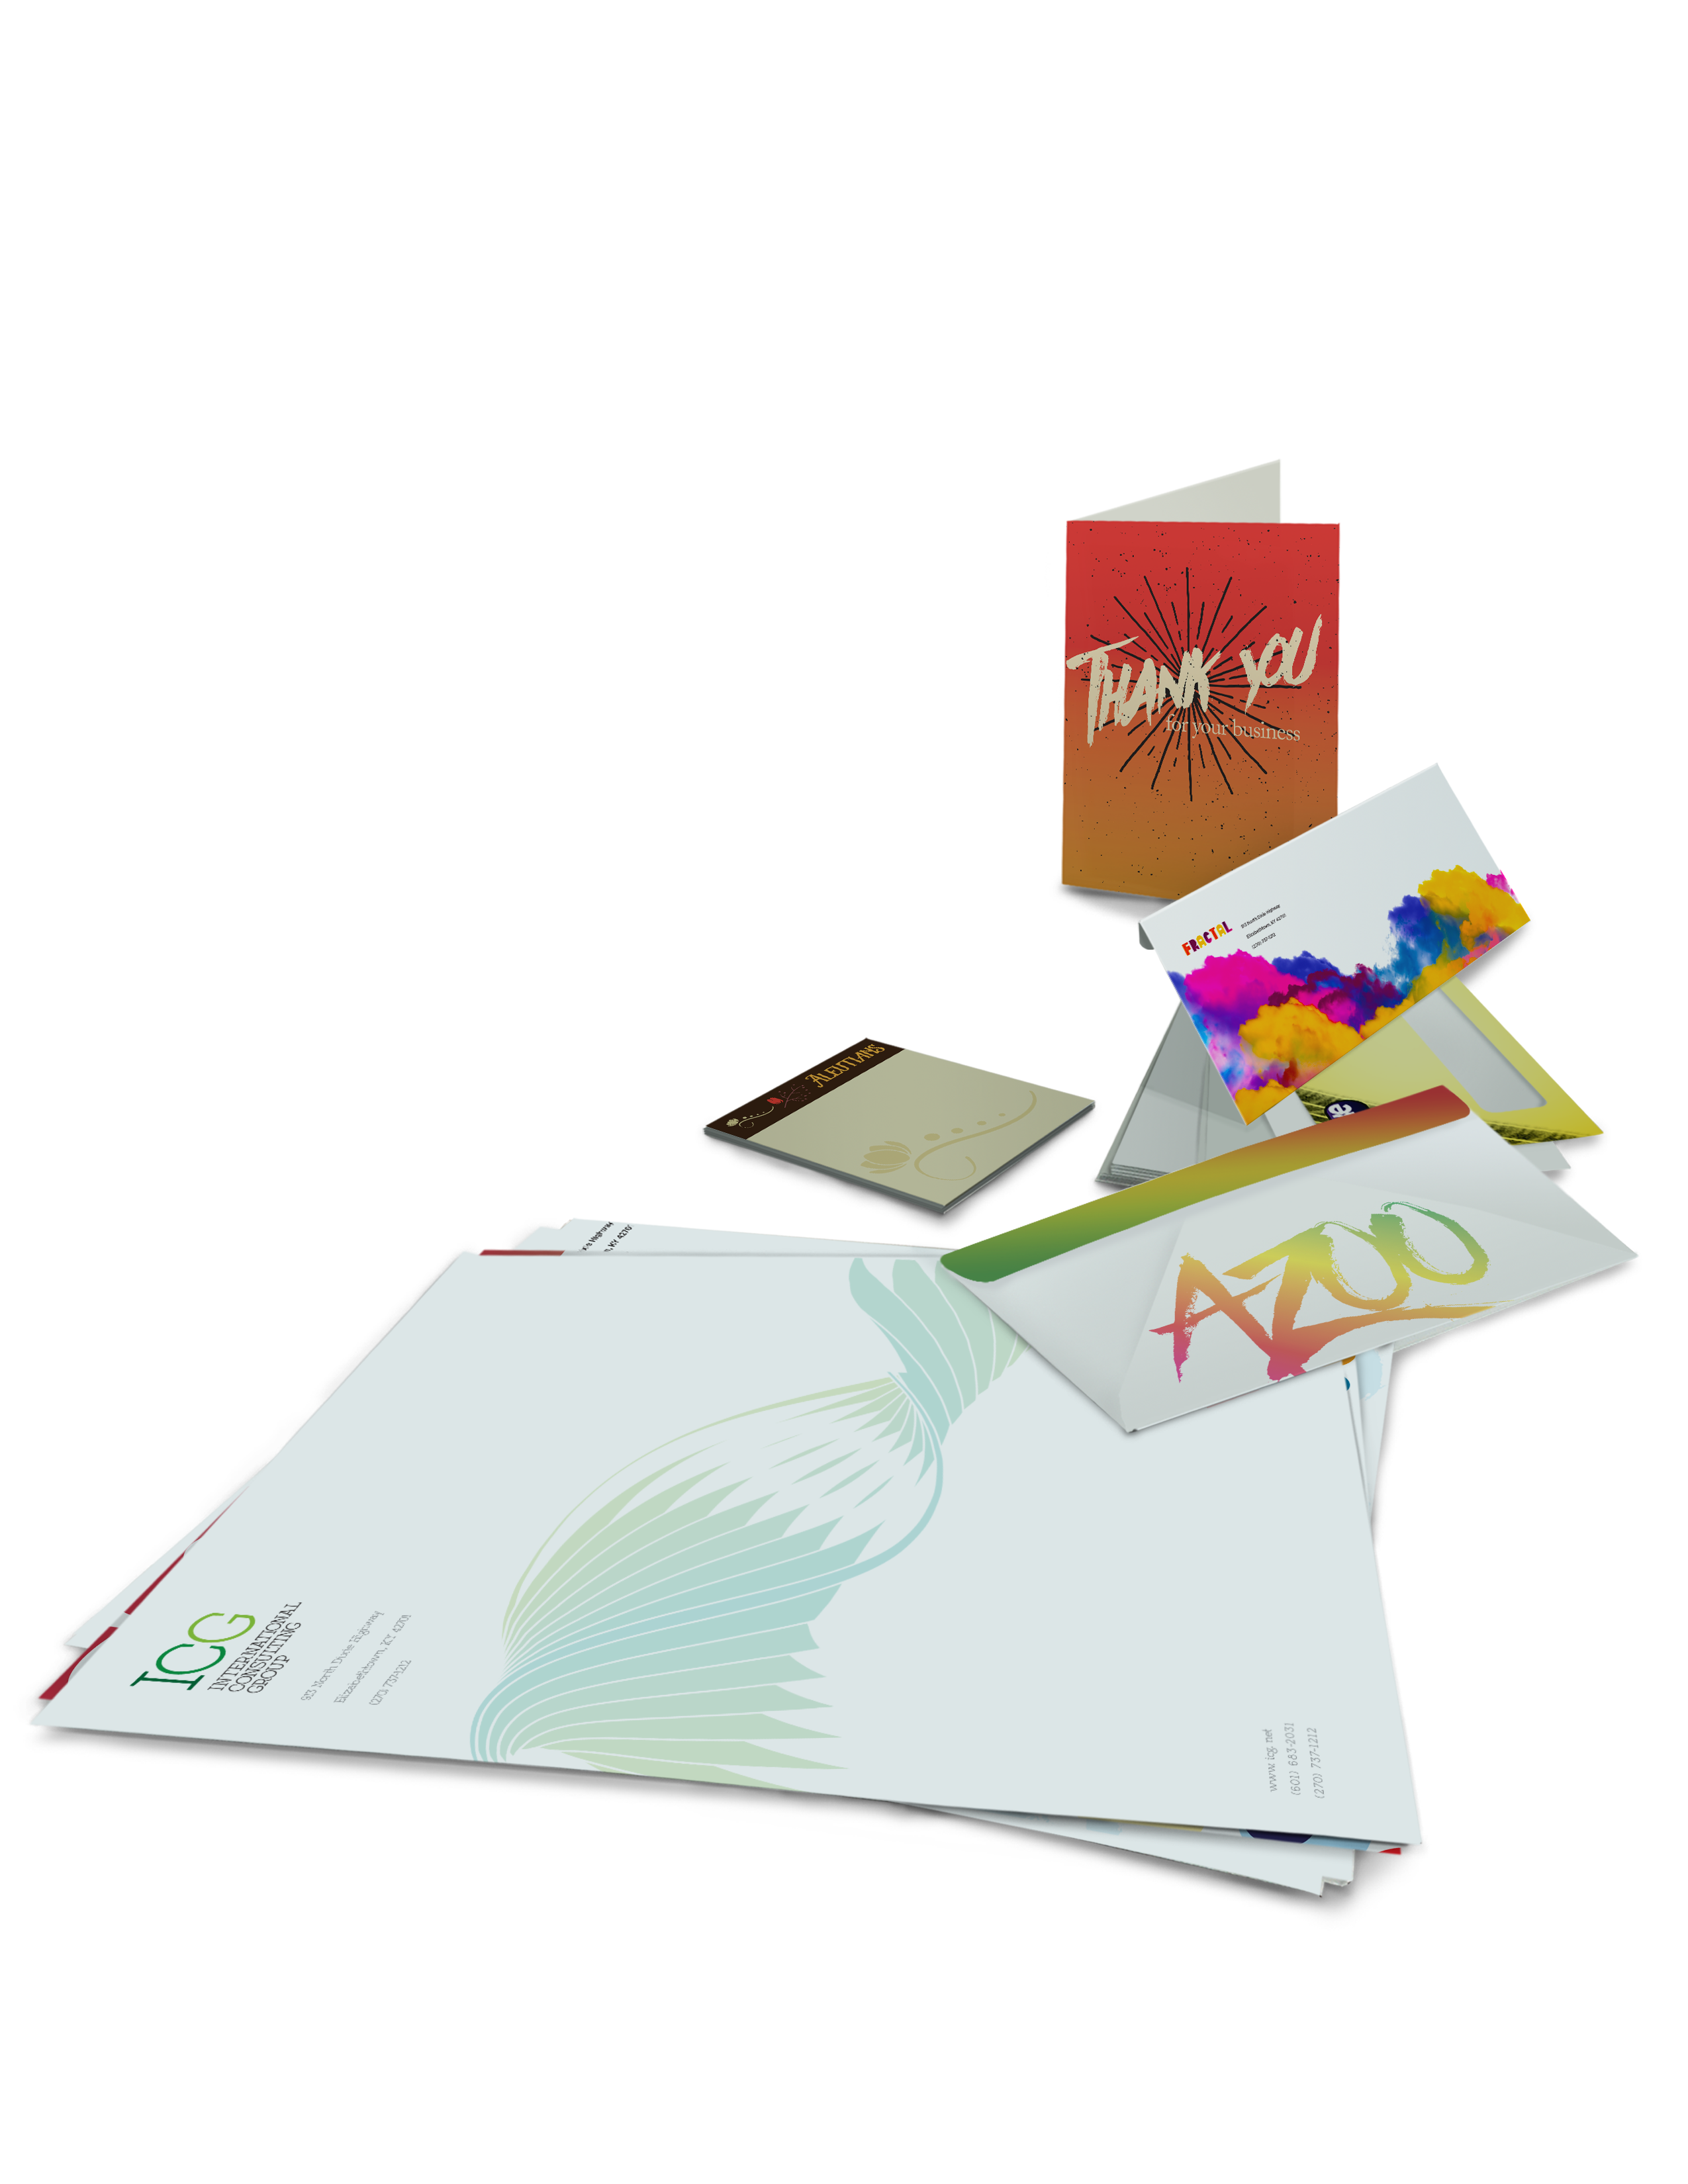 Promotional Stationary Printing - Full Color Printing Services - Roseville Printing California